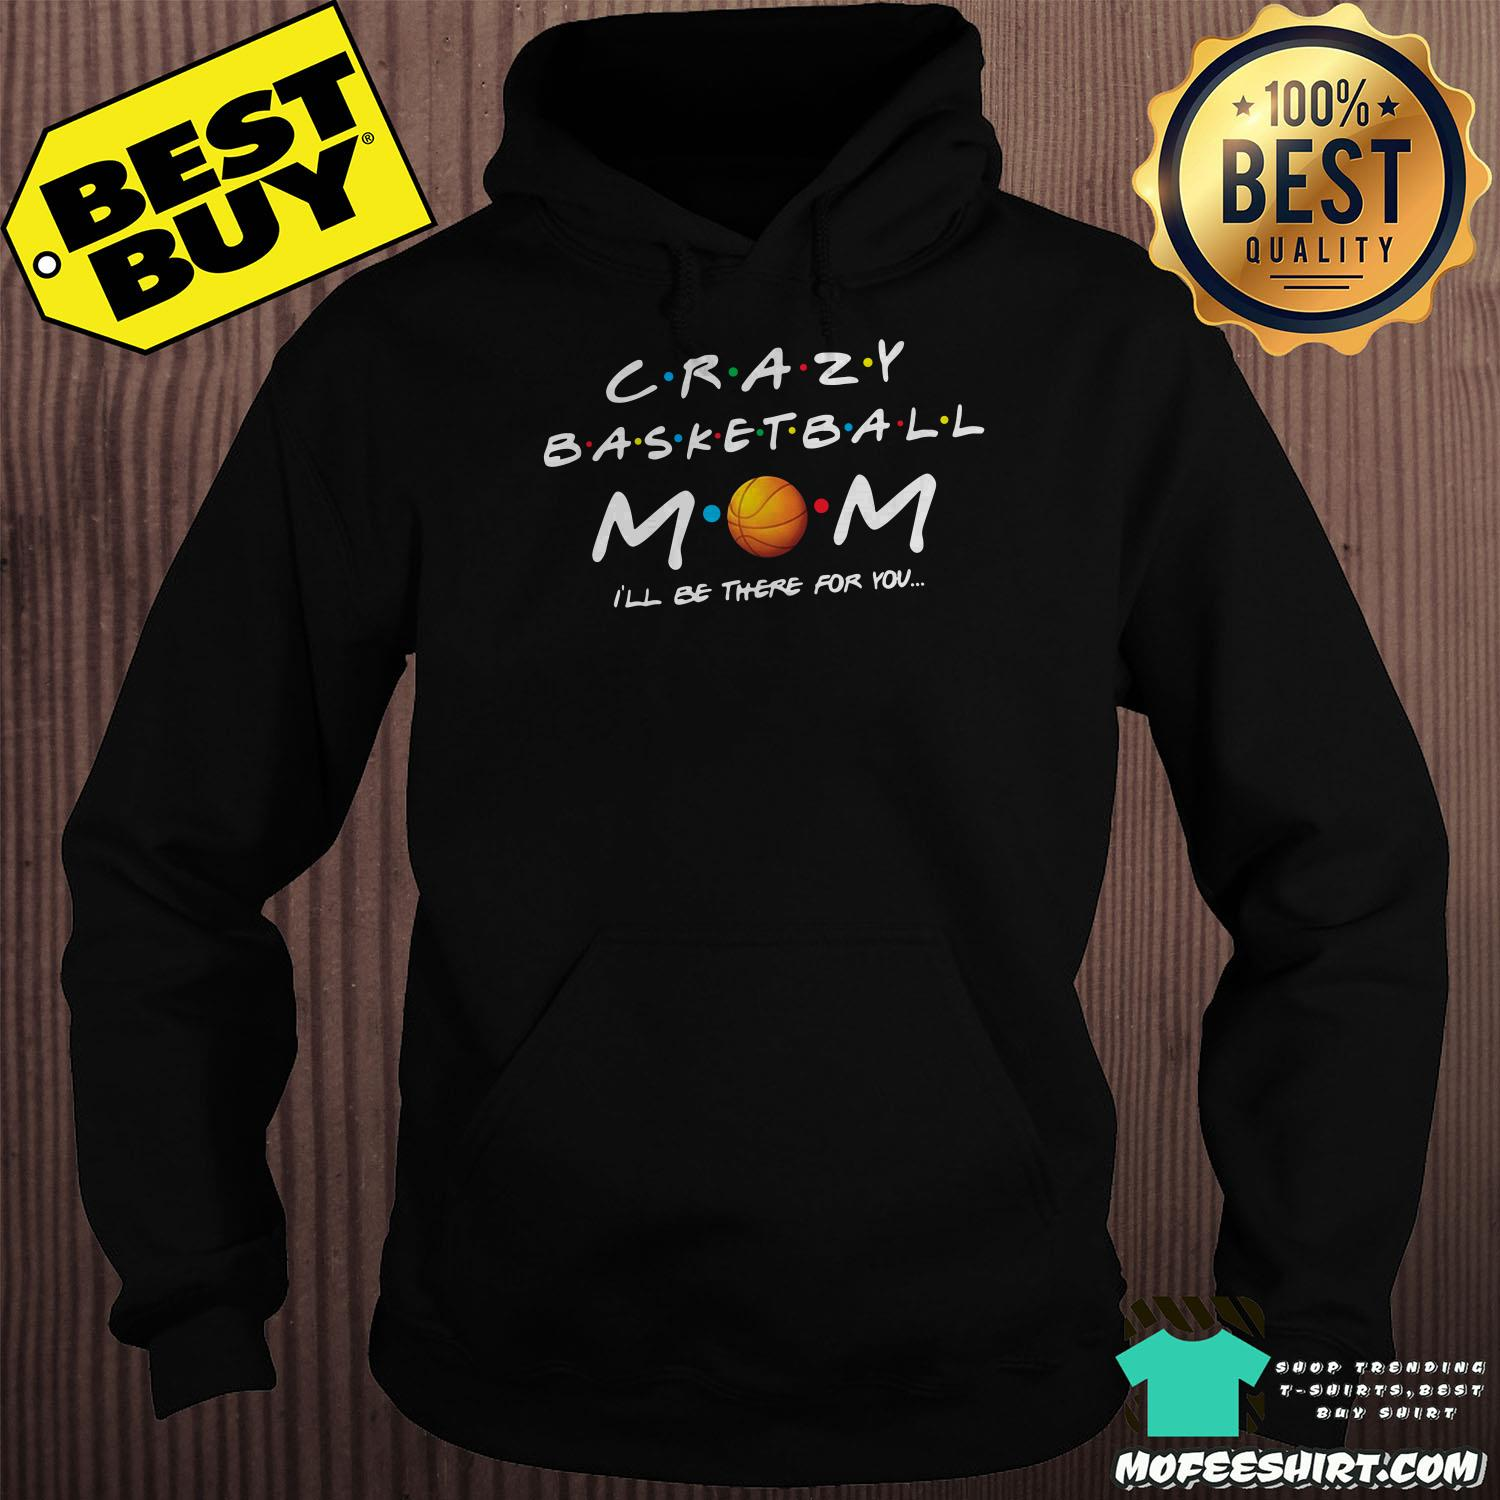 crazy basketball mom ill be there for you hoodie - Crazy Basketball MomI'll be there for you shirt